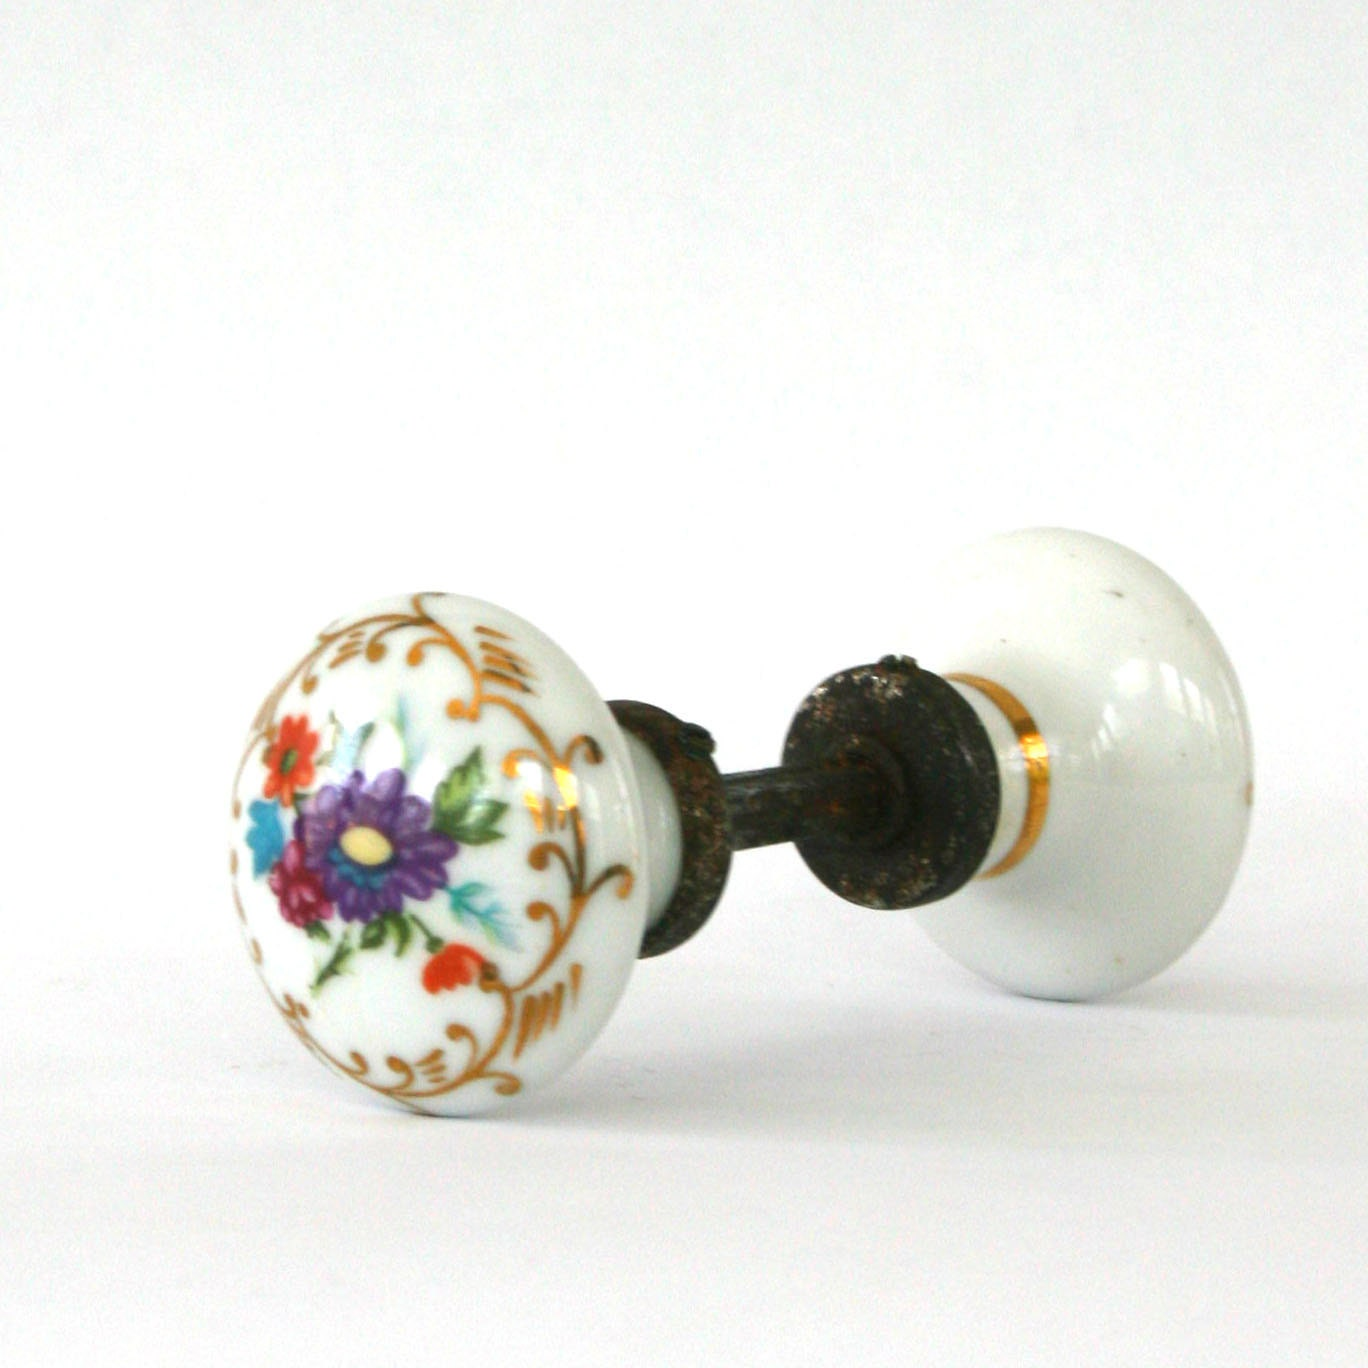 Antique Porcelain Door Knobs Floral Flowers Cottage Chic